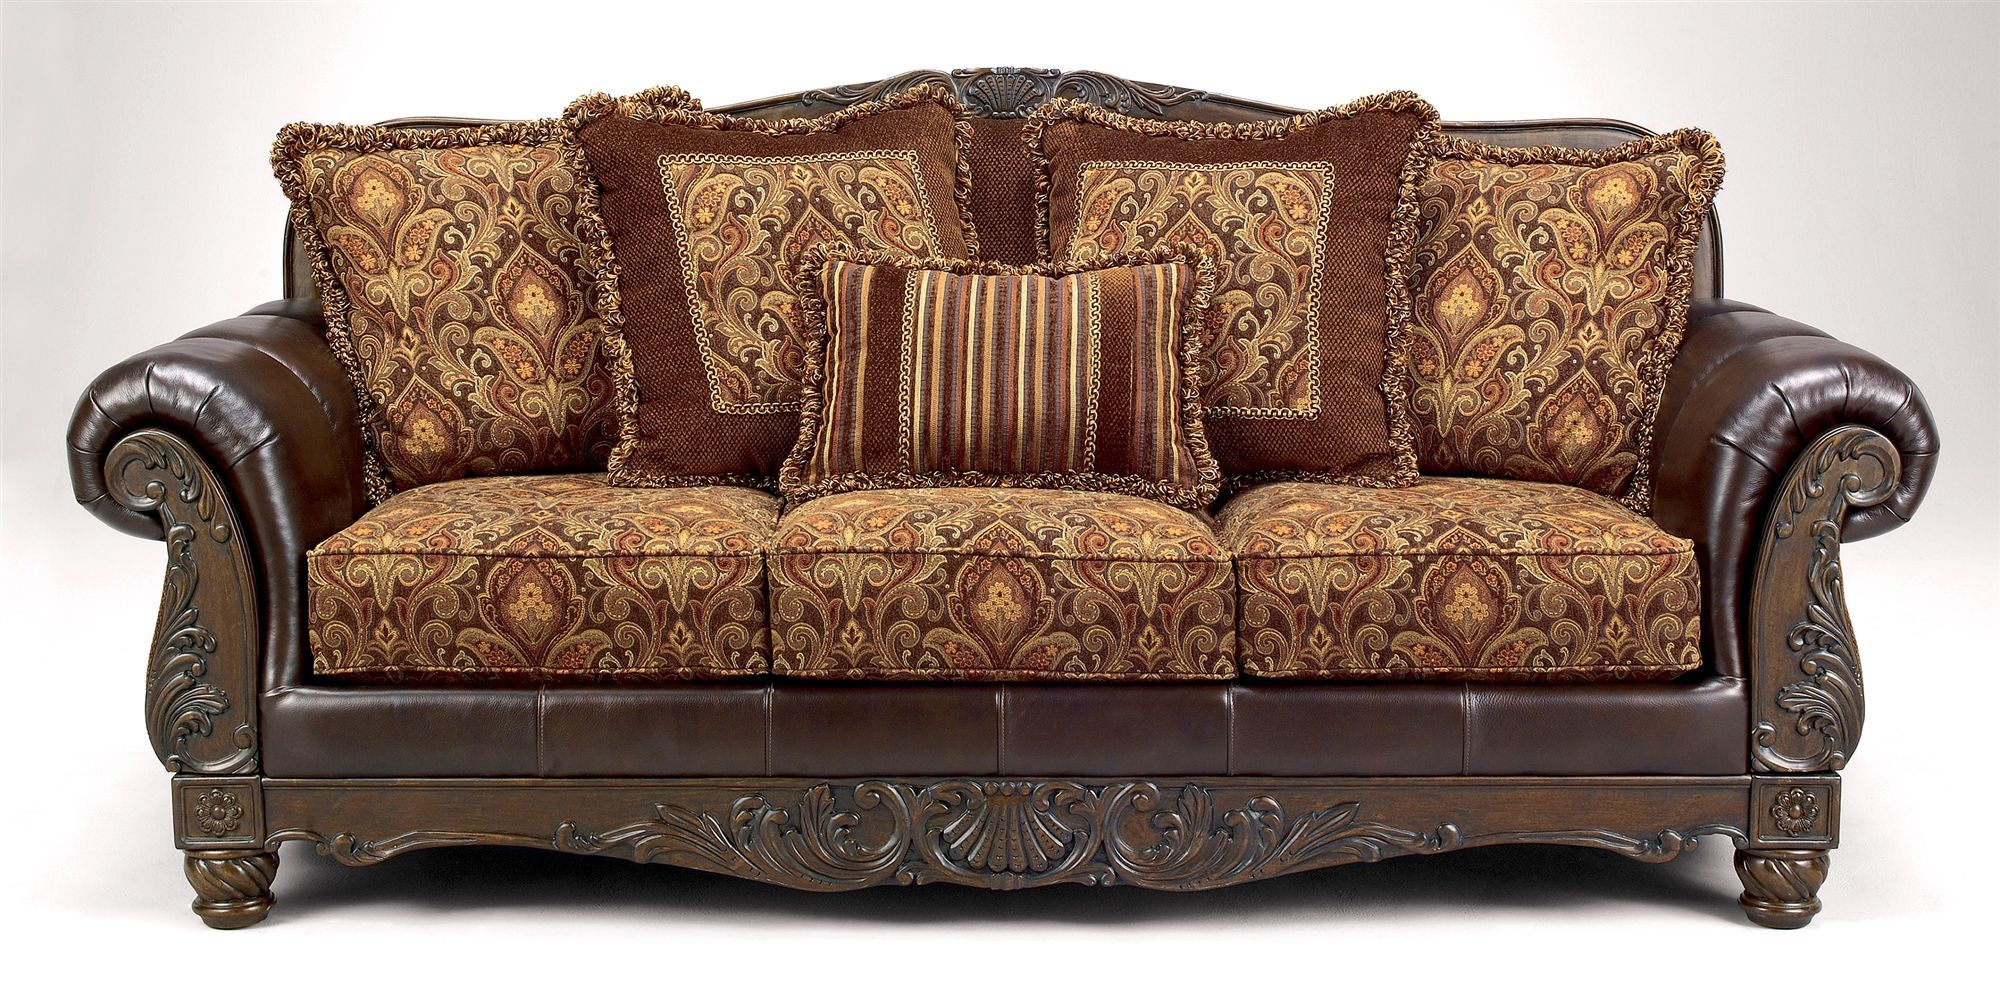 Buy Low Price Signet By Ivgstores Carved Wood Sofa W